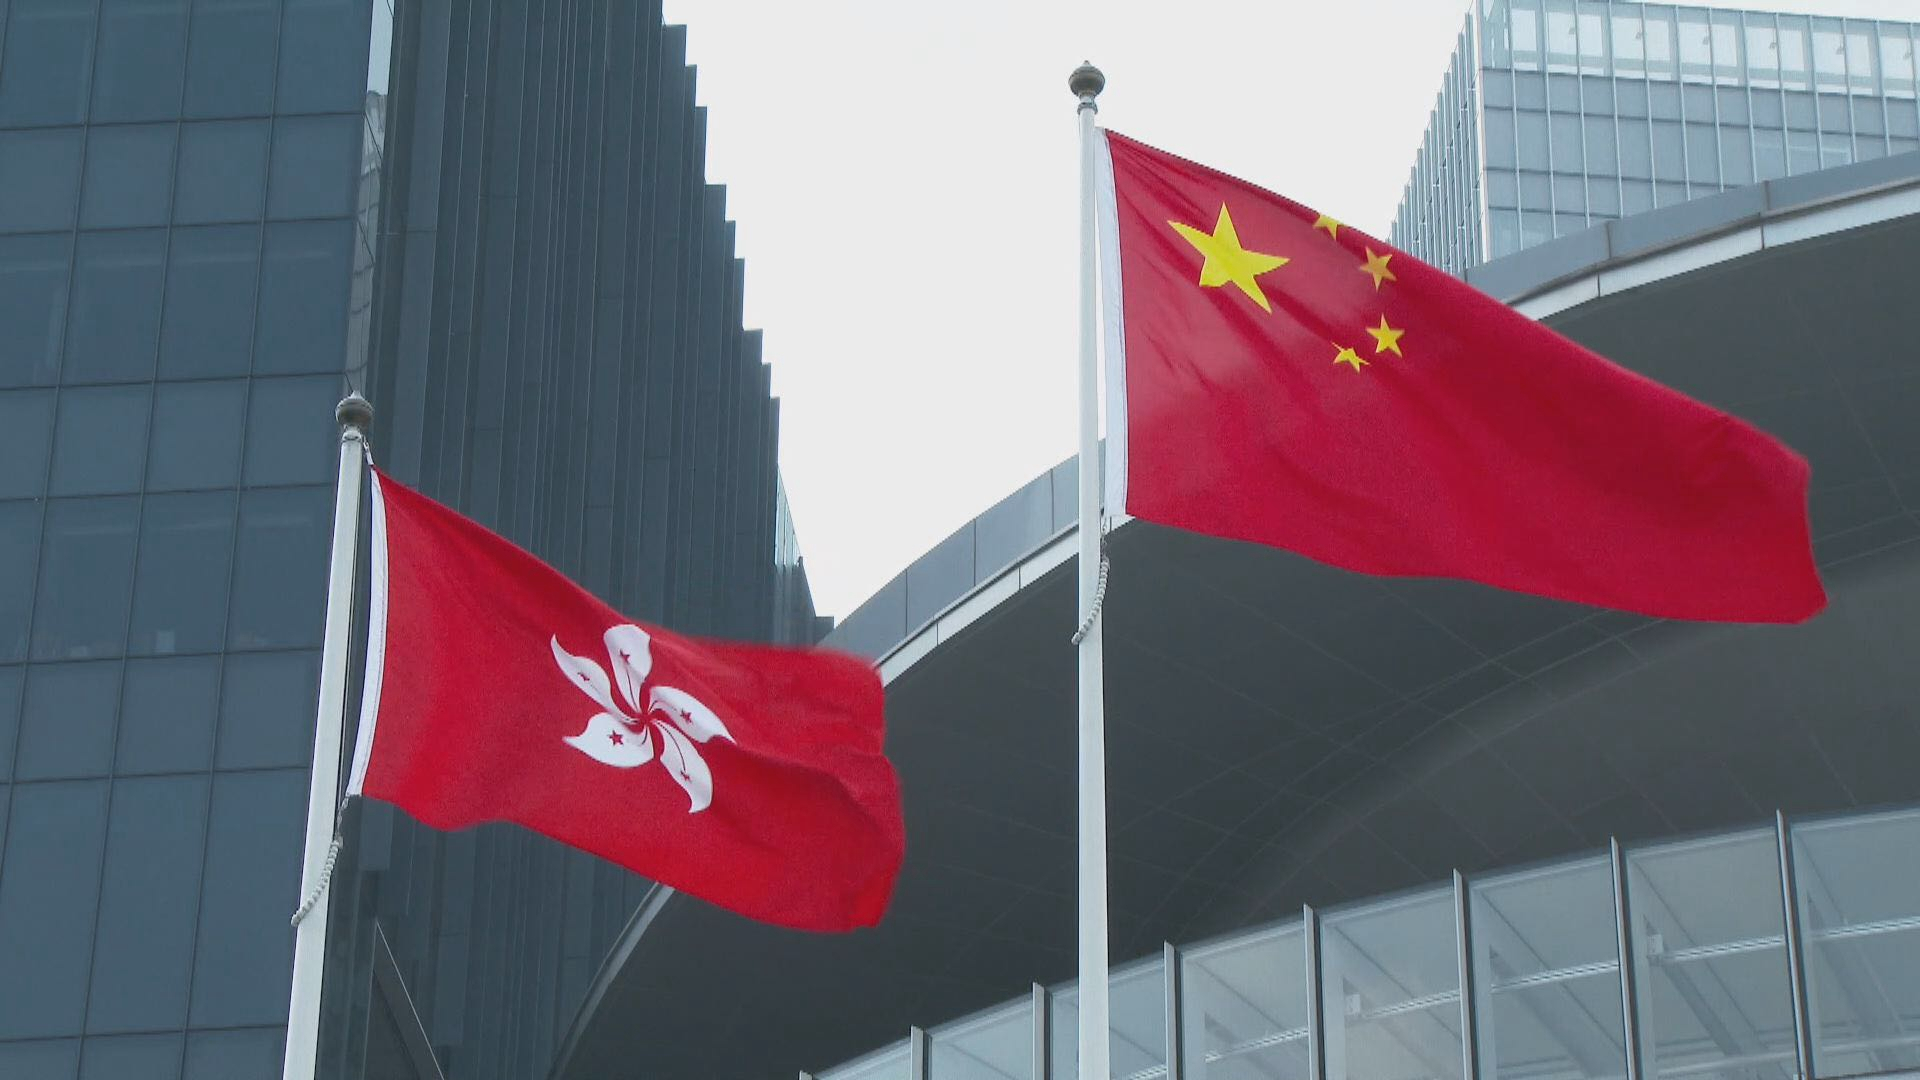 Canada's comments on HKSAR national security law grossly interferes in China's internal affairs: Chinese embassy